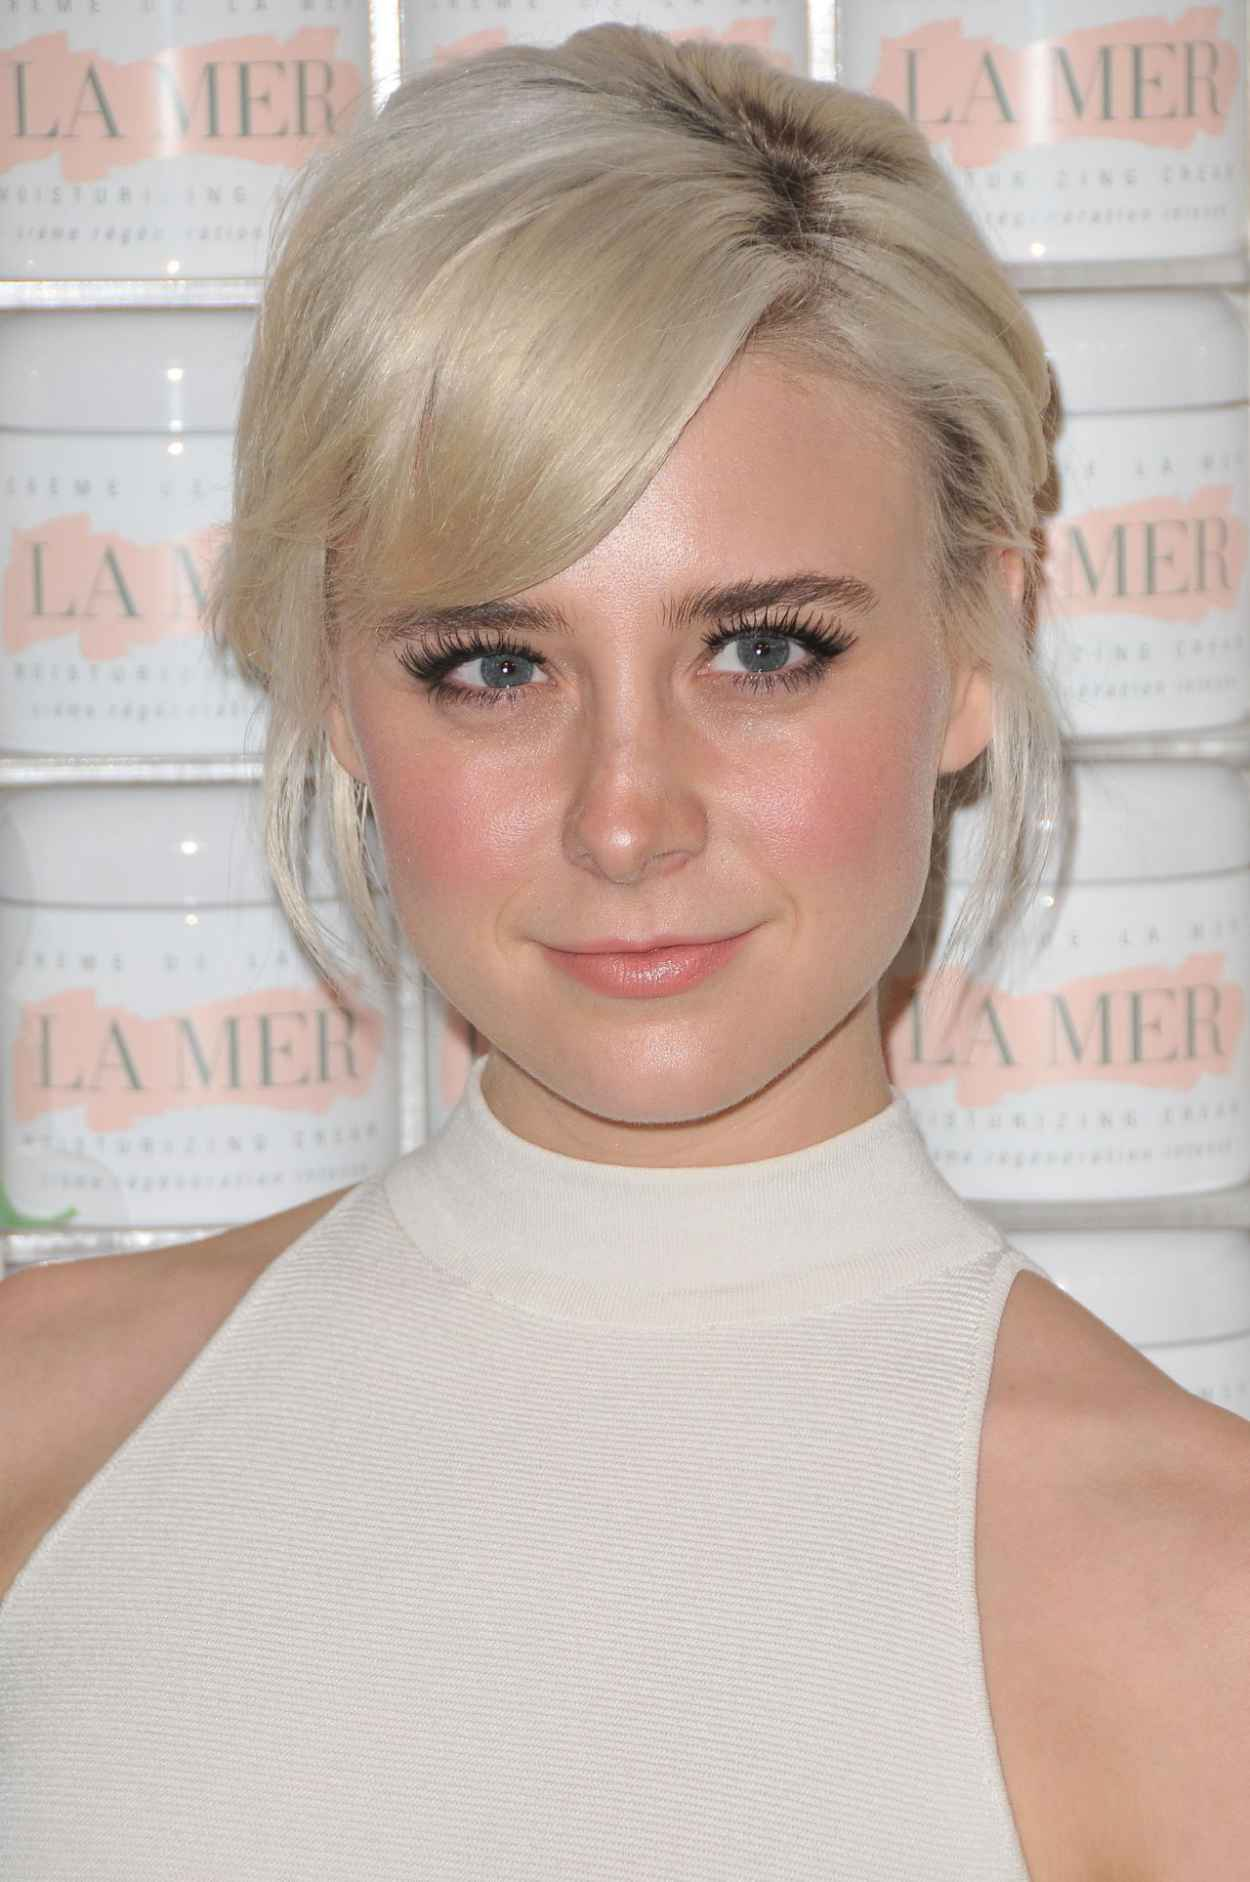 alessandra torresani american horror storyalessandra torresani instagram, alessandra torresani vk, alessandra torresani tyler shield, alessandra torresani the big bang theory, alessandra torresani height weight, alessandra torresani, alessandra torresani tumblr, alessandra torresani caprica, alessandra torresani twitter, alessandra torresani facebook, alessandra torresani malcolm, alessandra torresani imdb, alessandra torresani workaholics, alessandra torresani nudography, alessandra torresani american horror story